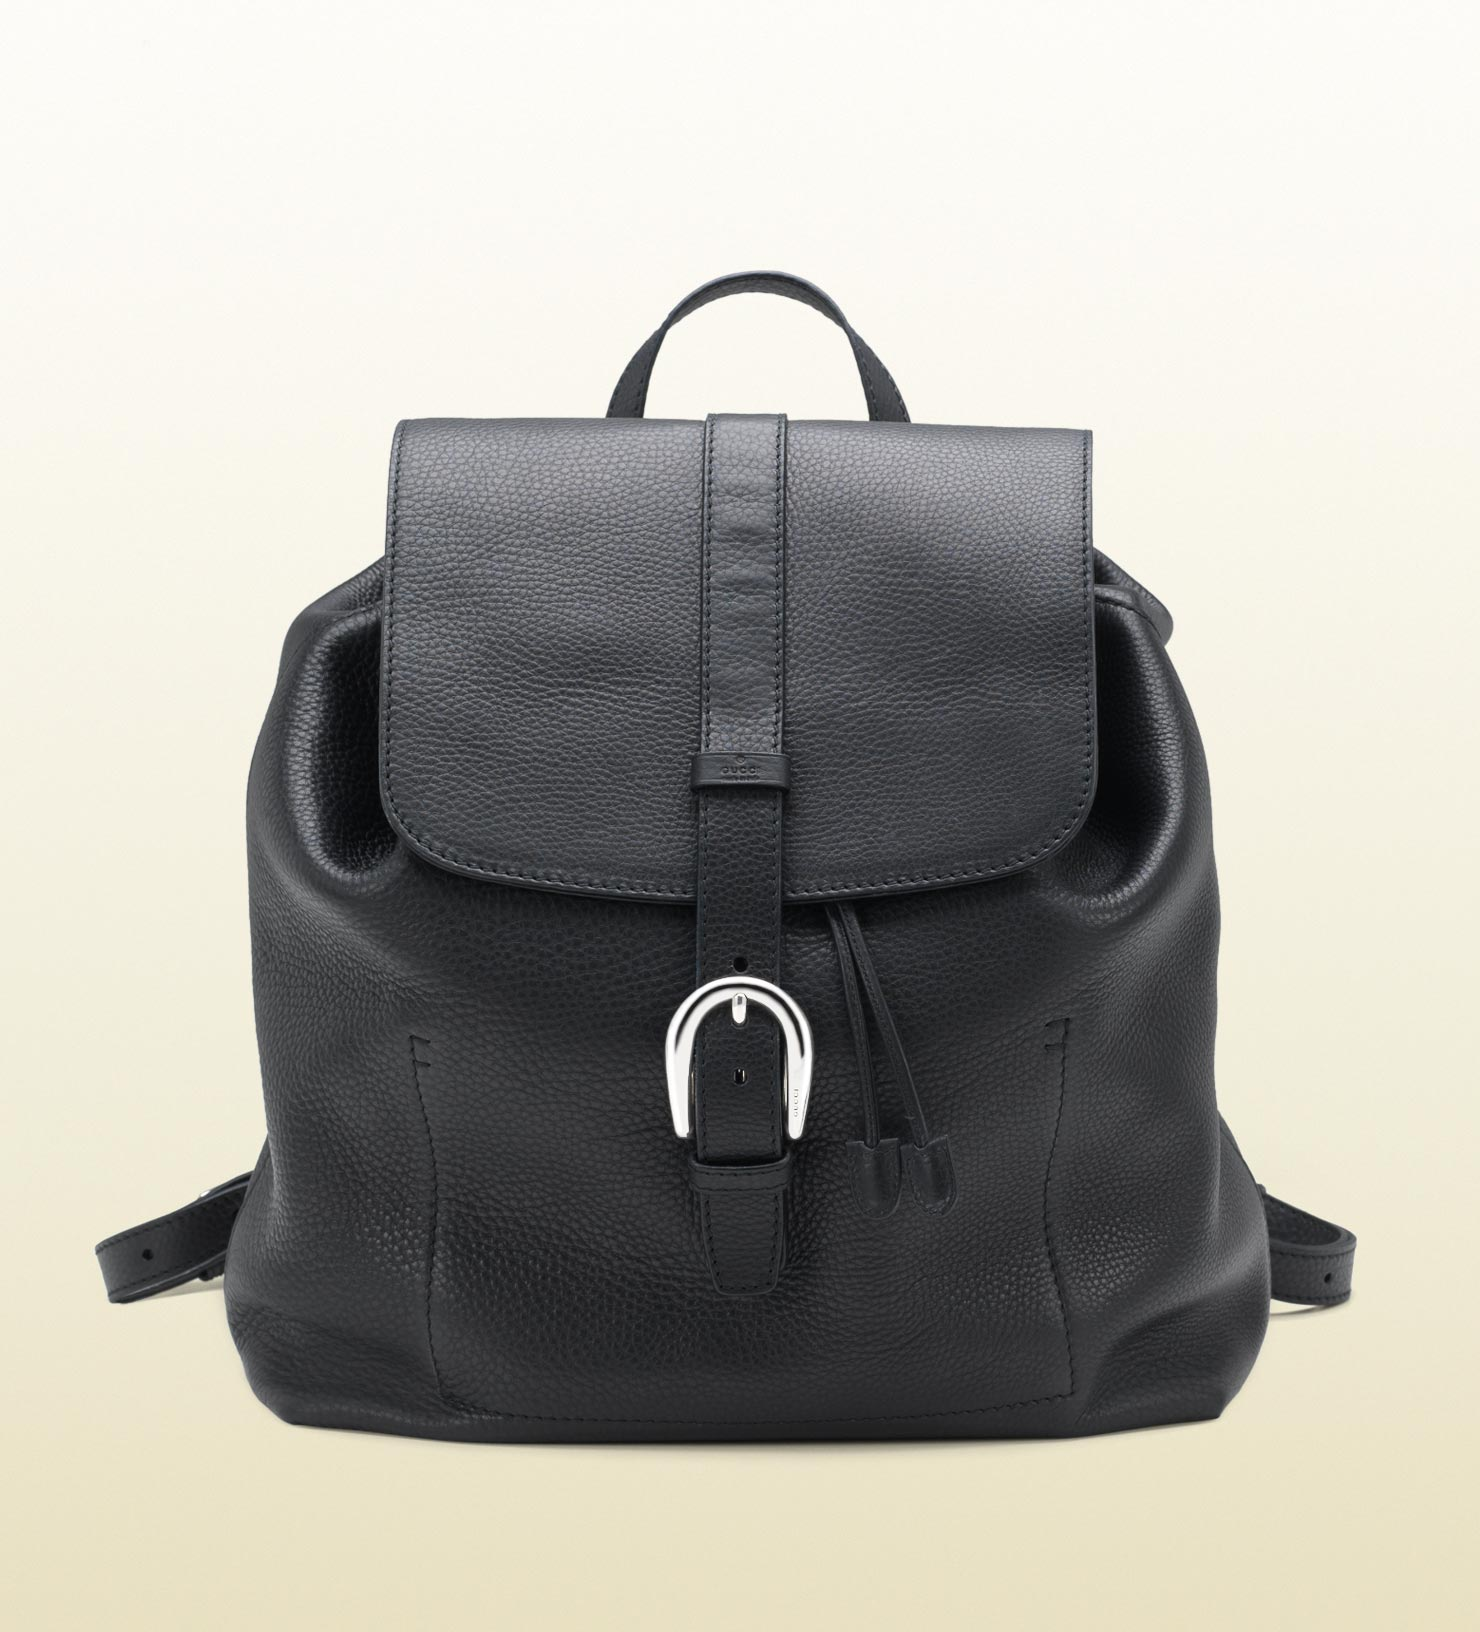 Lyst - Gucci Backpack with Flap Closure in Black for Men 66a89ef5fce20